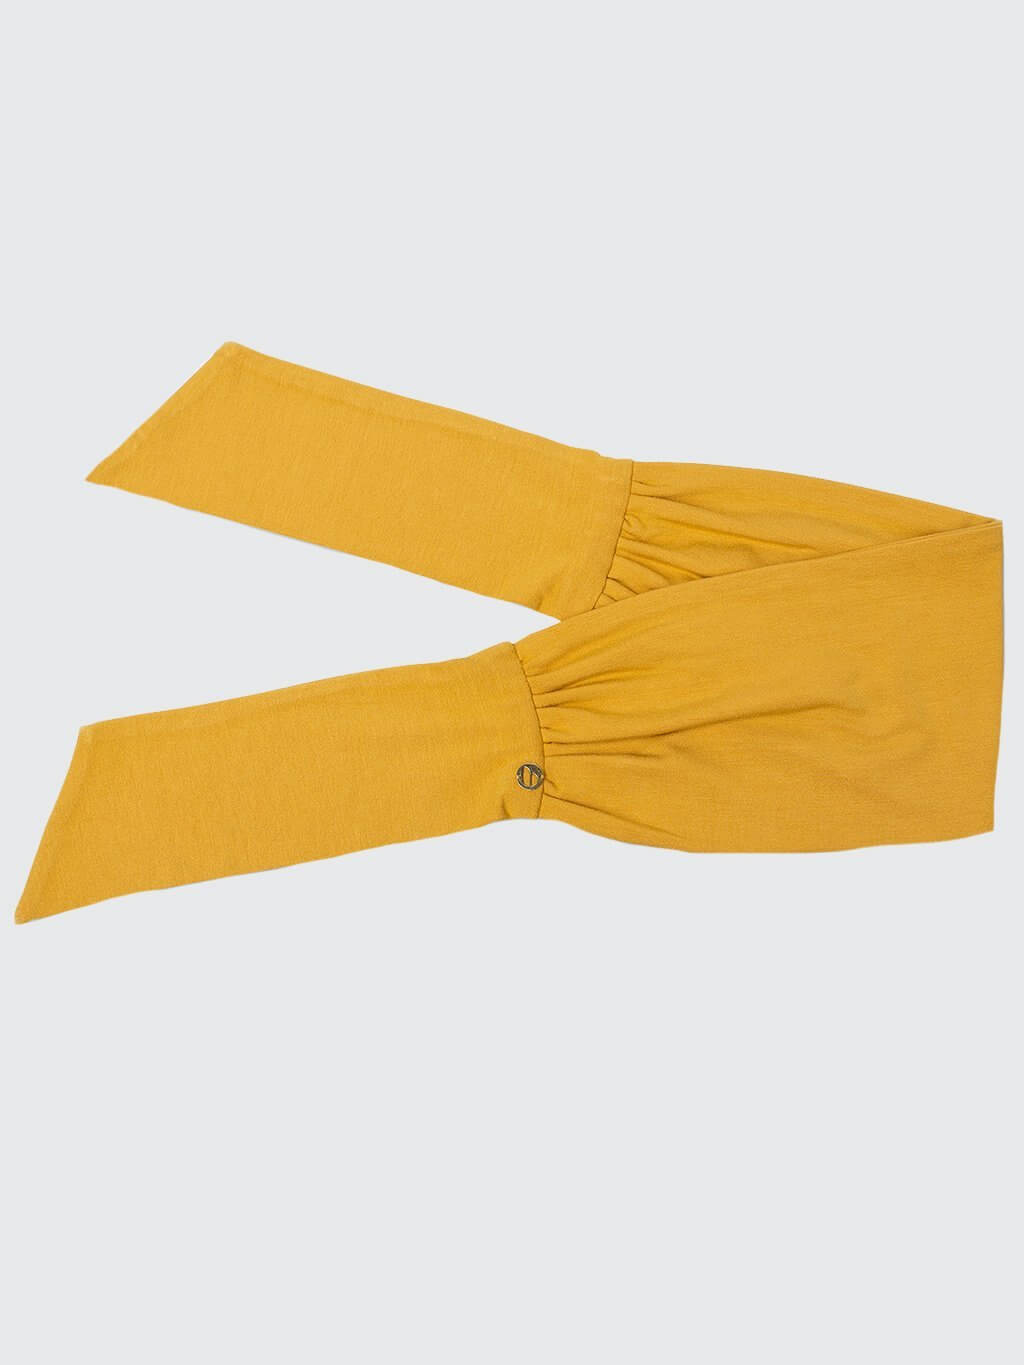 Beau Tie | Lucky Yellow